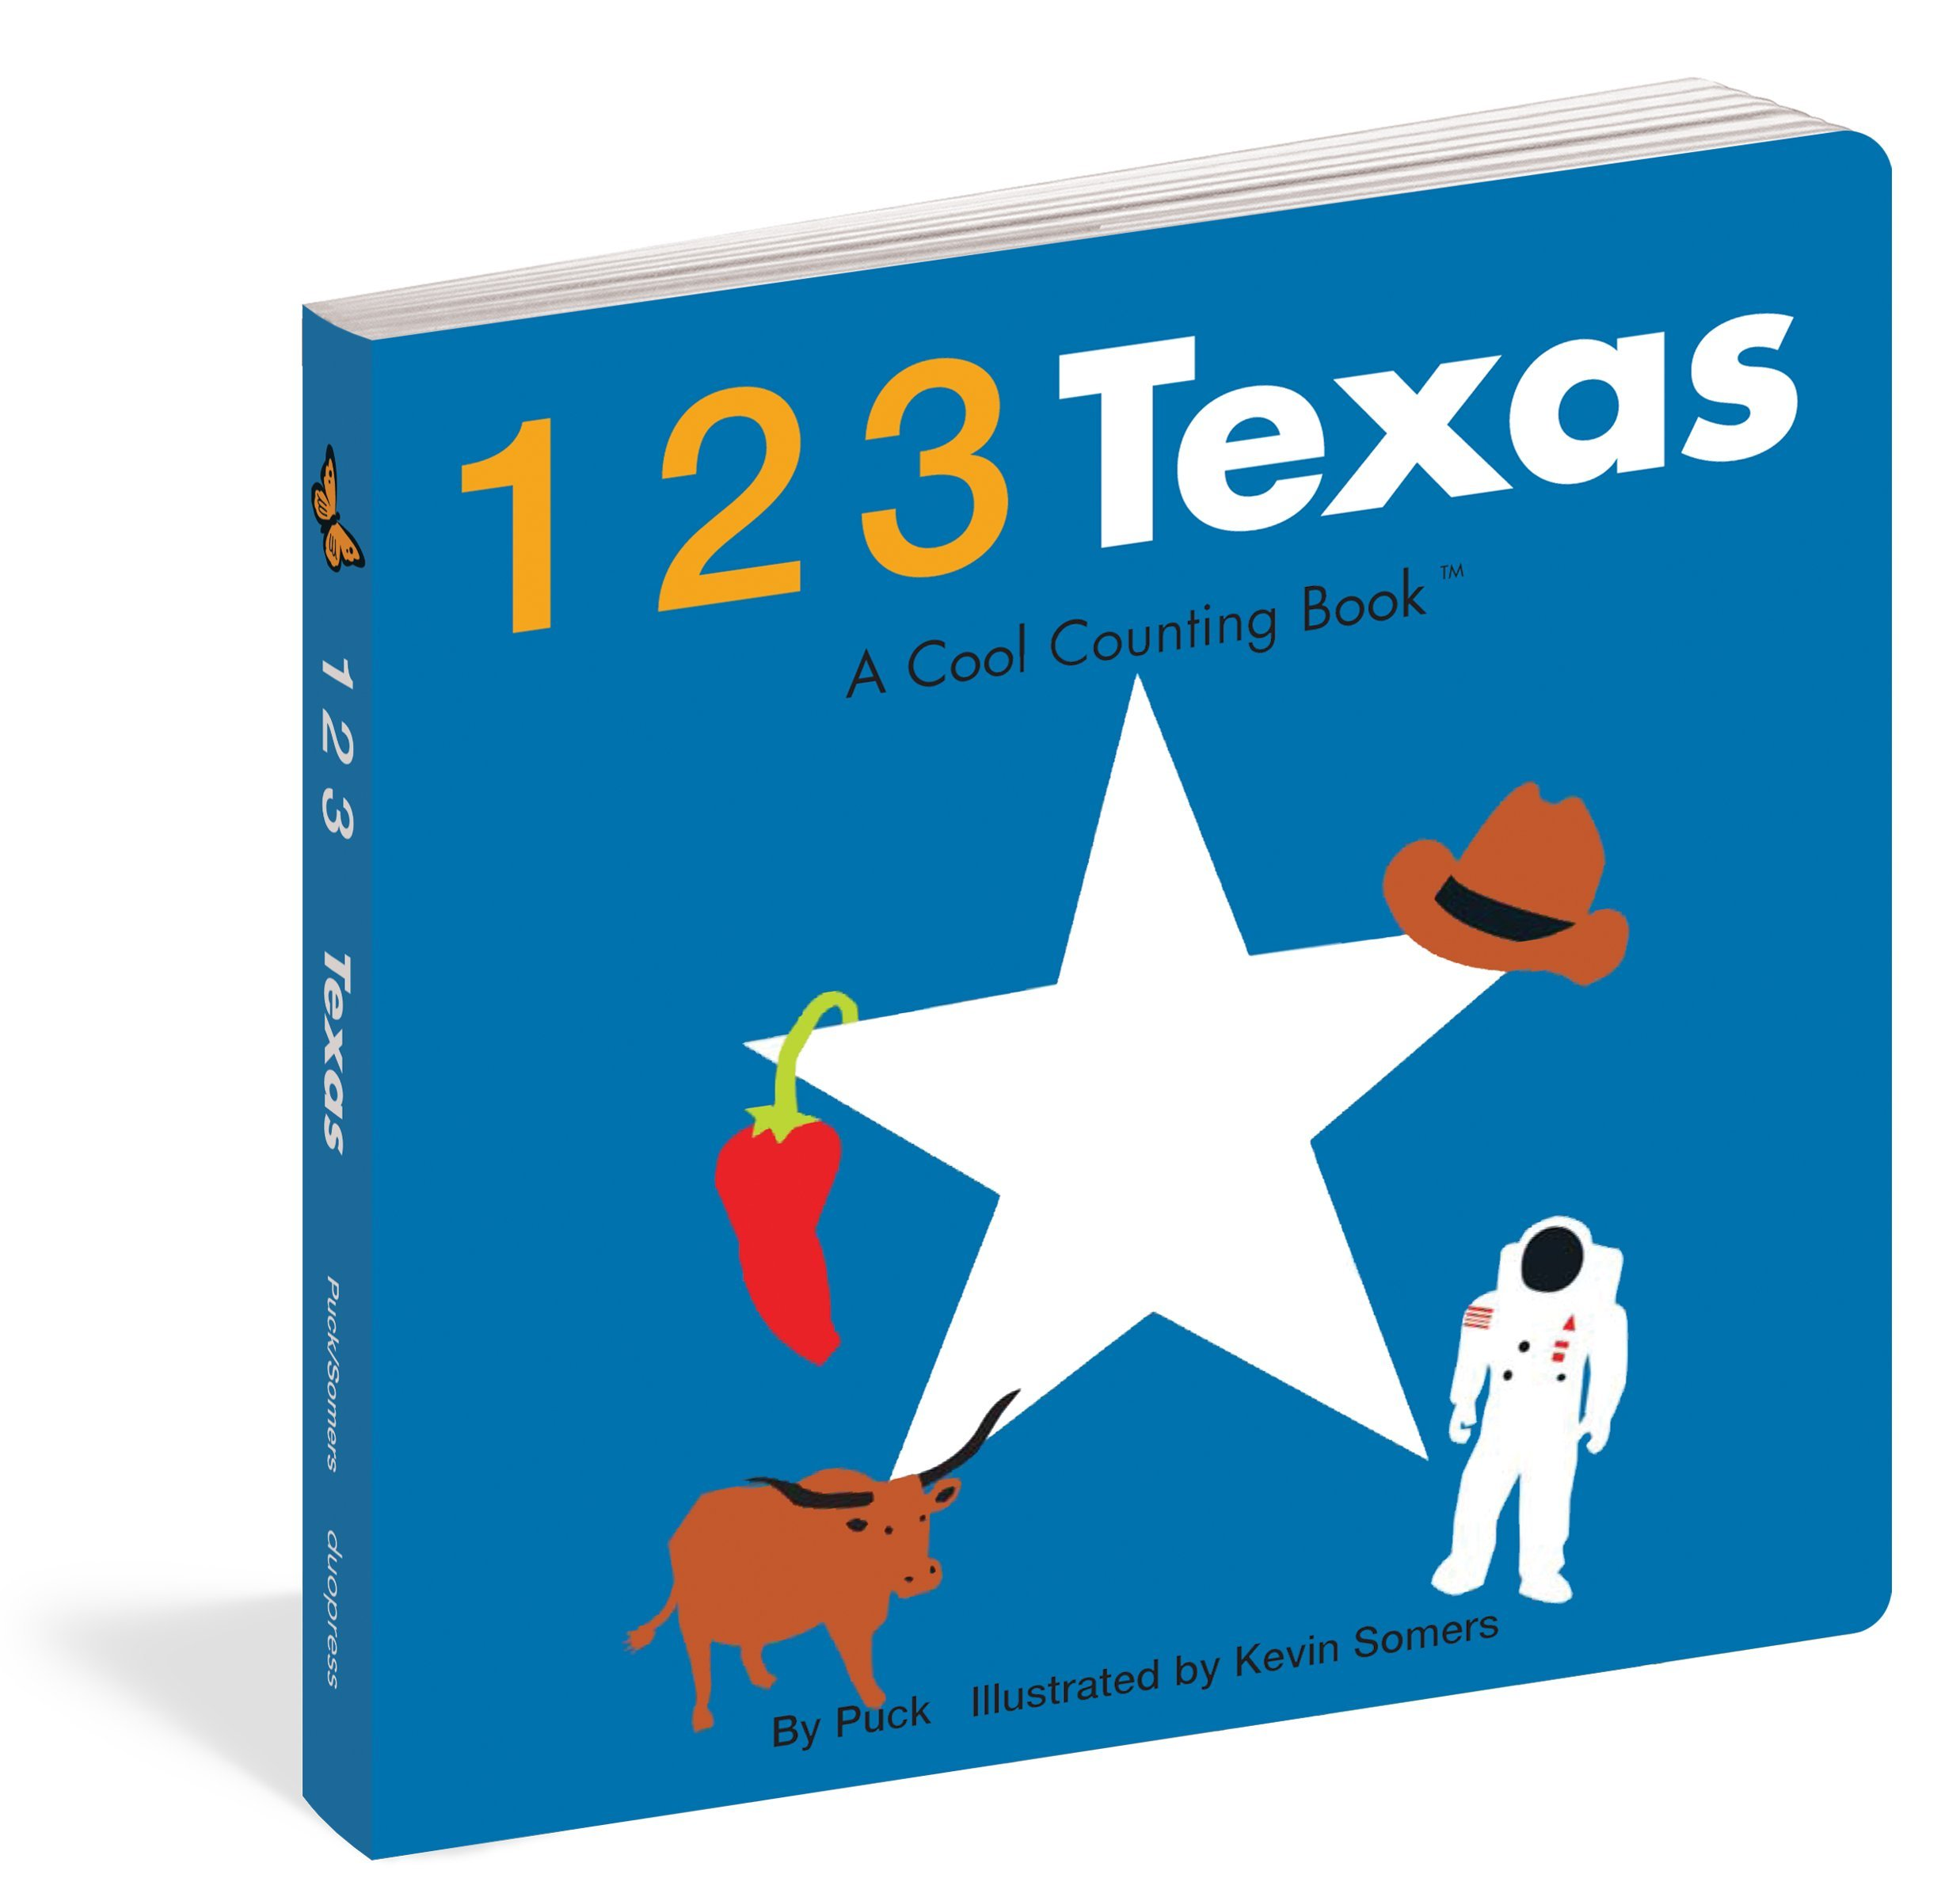 123 texas cool counting books puck 9780979621369 amazon books buycottarizona Images